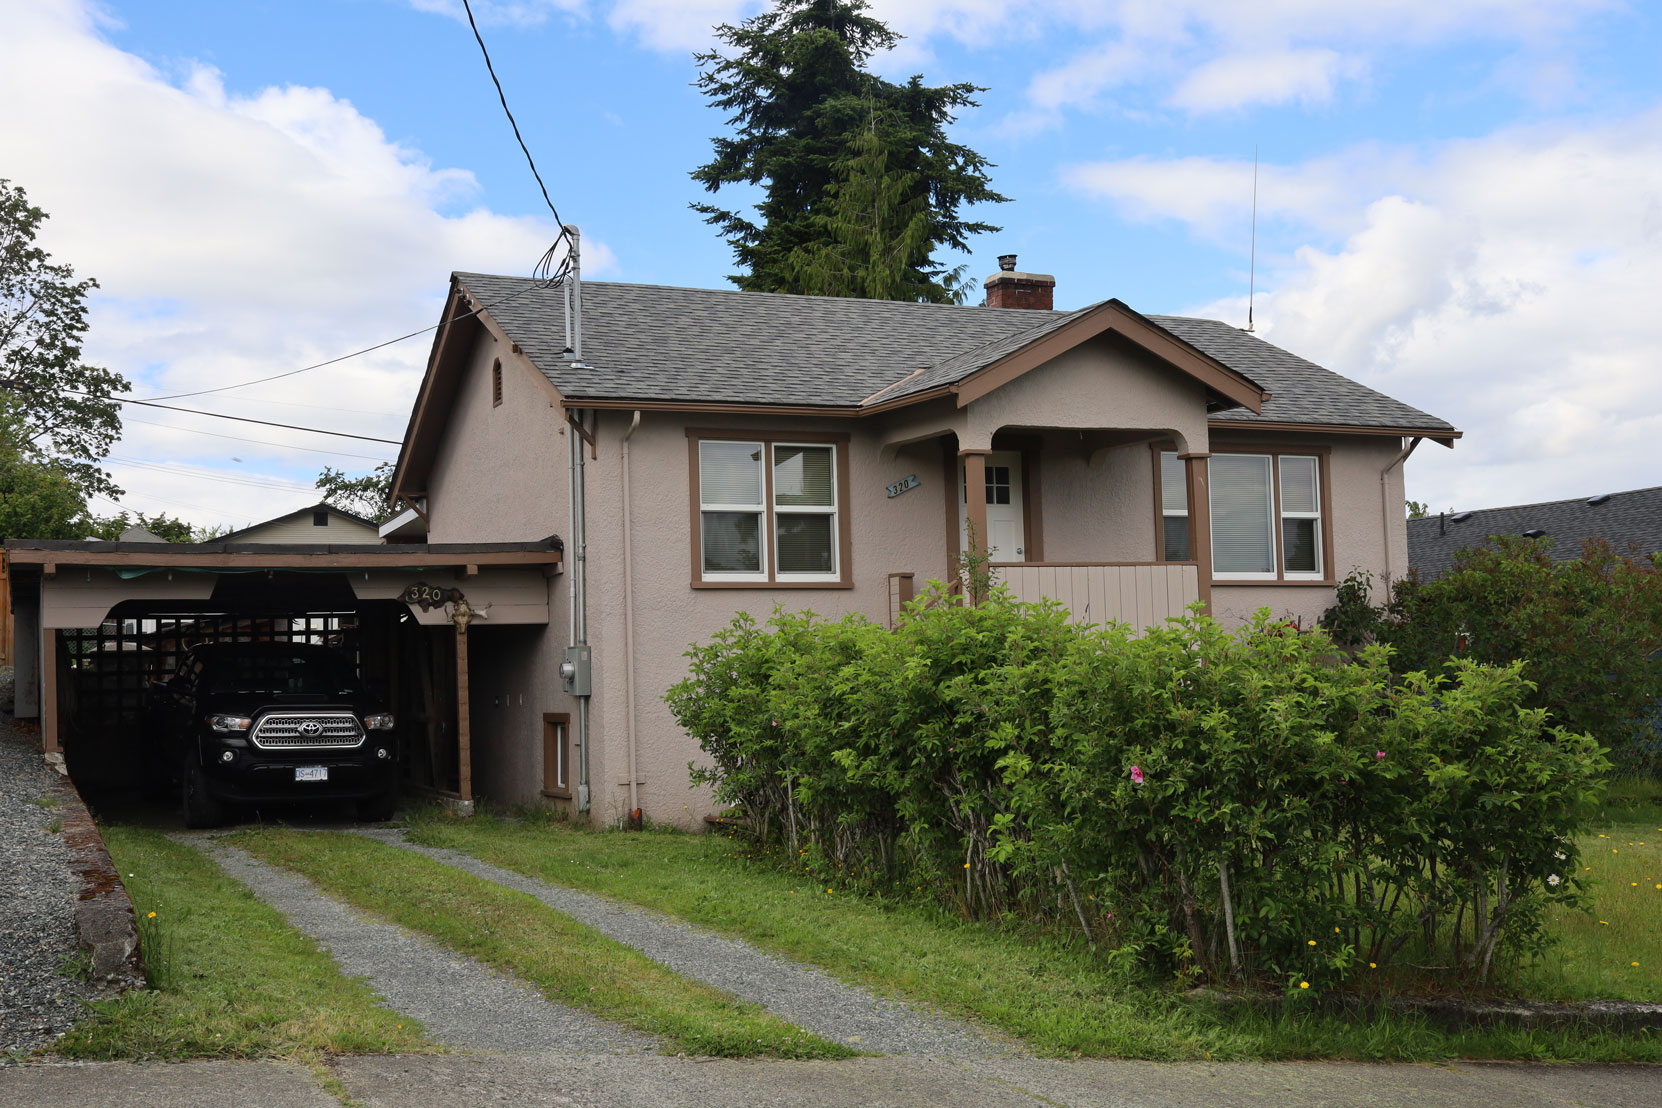 320 Methuen Street, Ladysmith, BC, built in 1942 (photo: Mark Anderson)